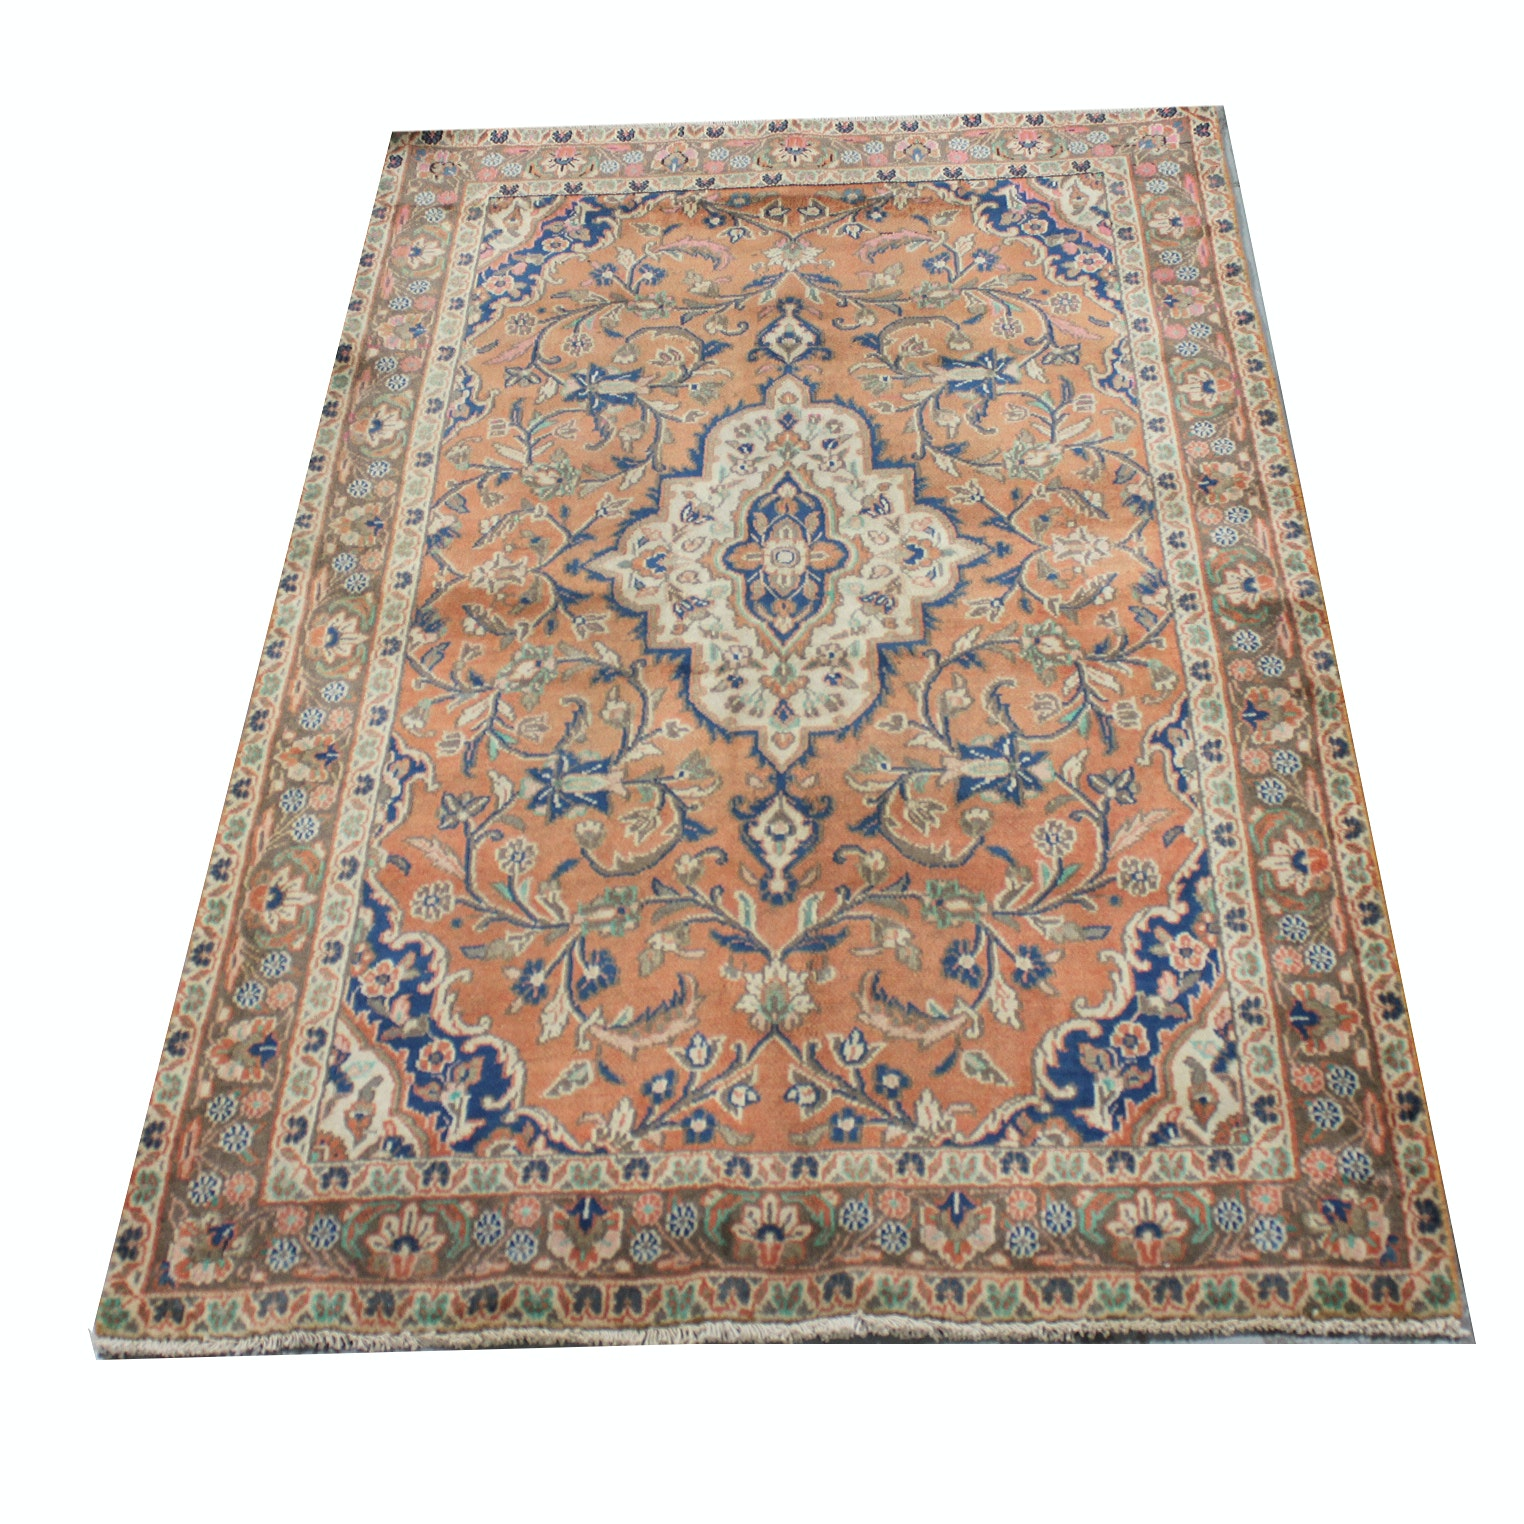 Hand-Knotted Semi-Antique Persian Mallayer Sarouk Rug